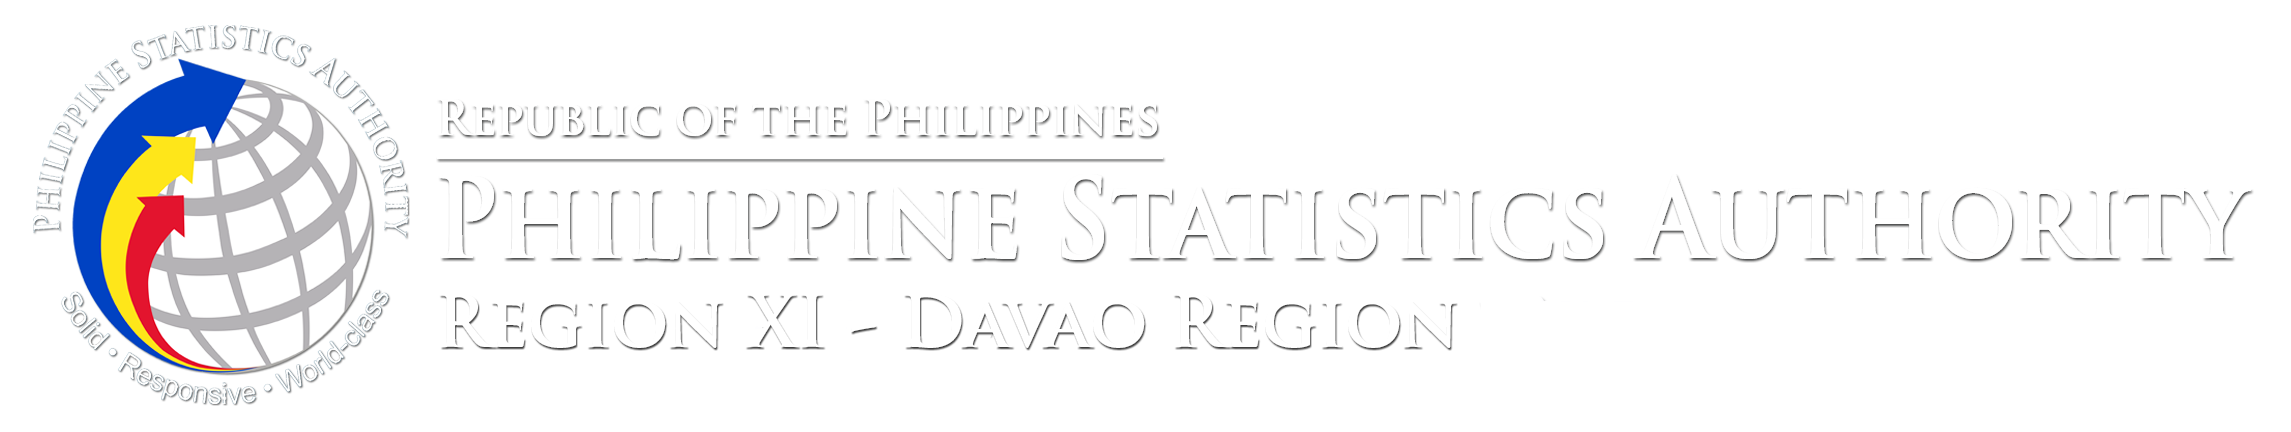 Philippine Statistics Authority Region XI